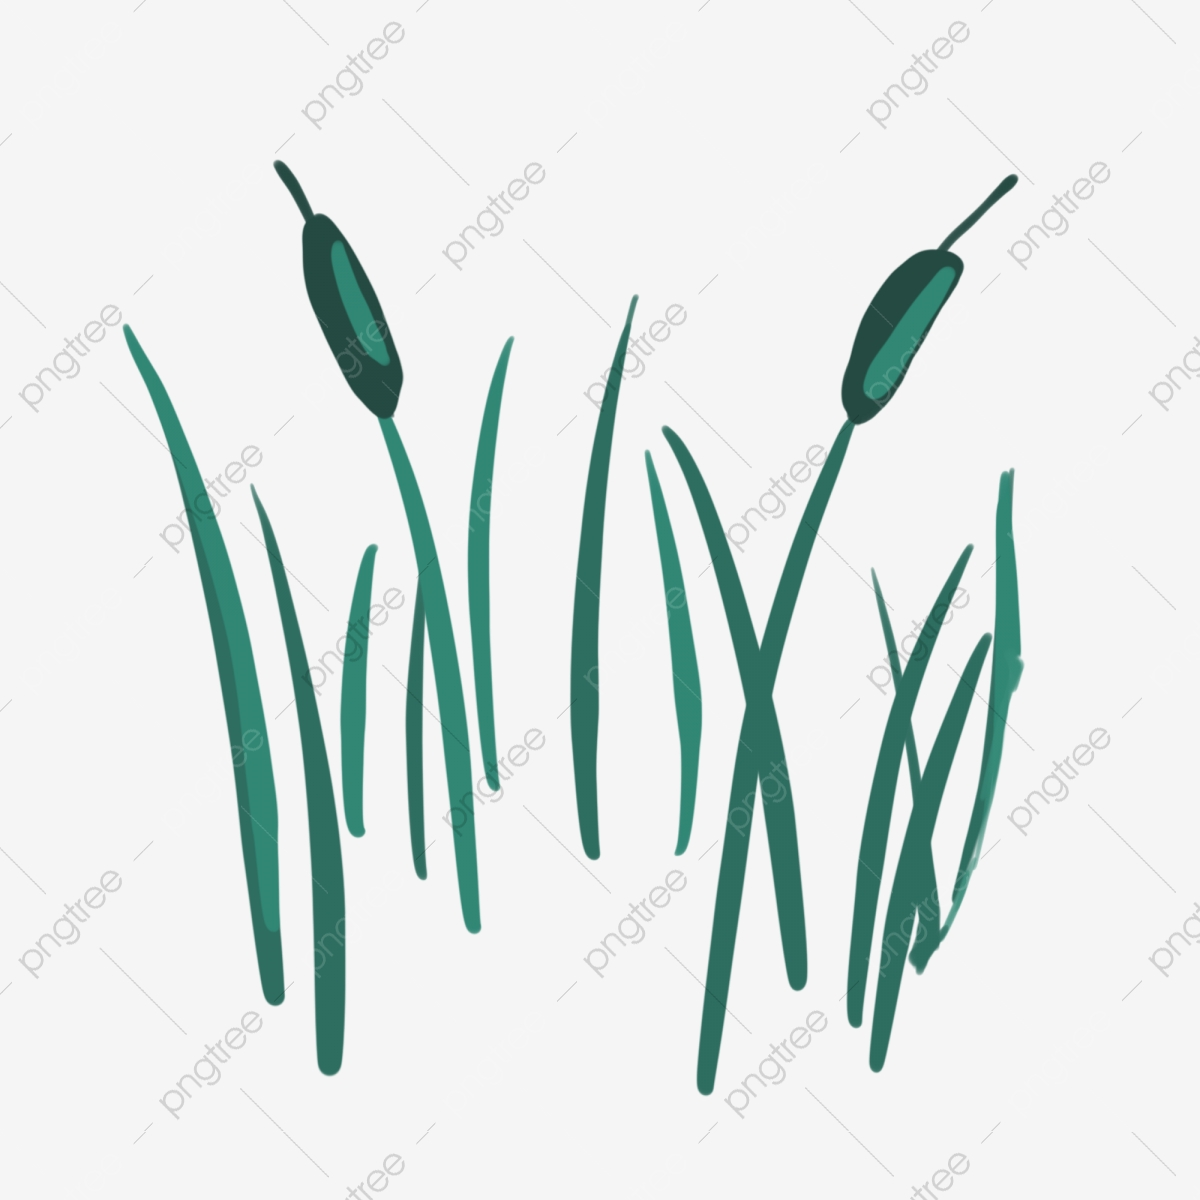 Dark Green Cartoon Green Plant Plant Reed Rural Spring Grass Green Reed Png Transparent Clipart Image And Psd File For Free Download